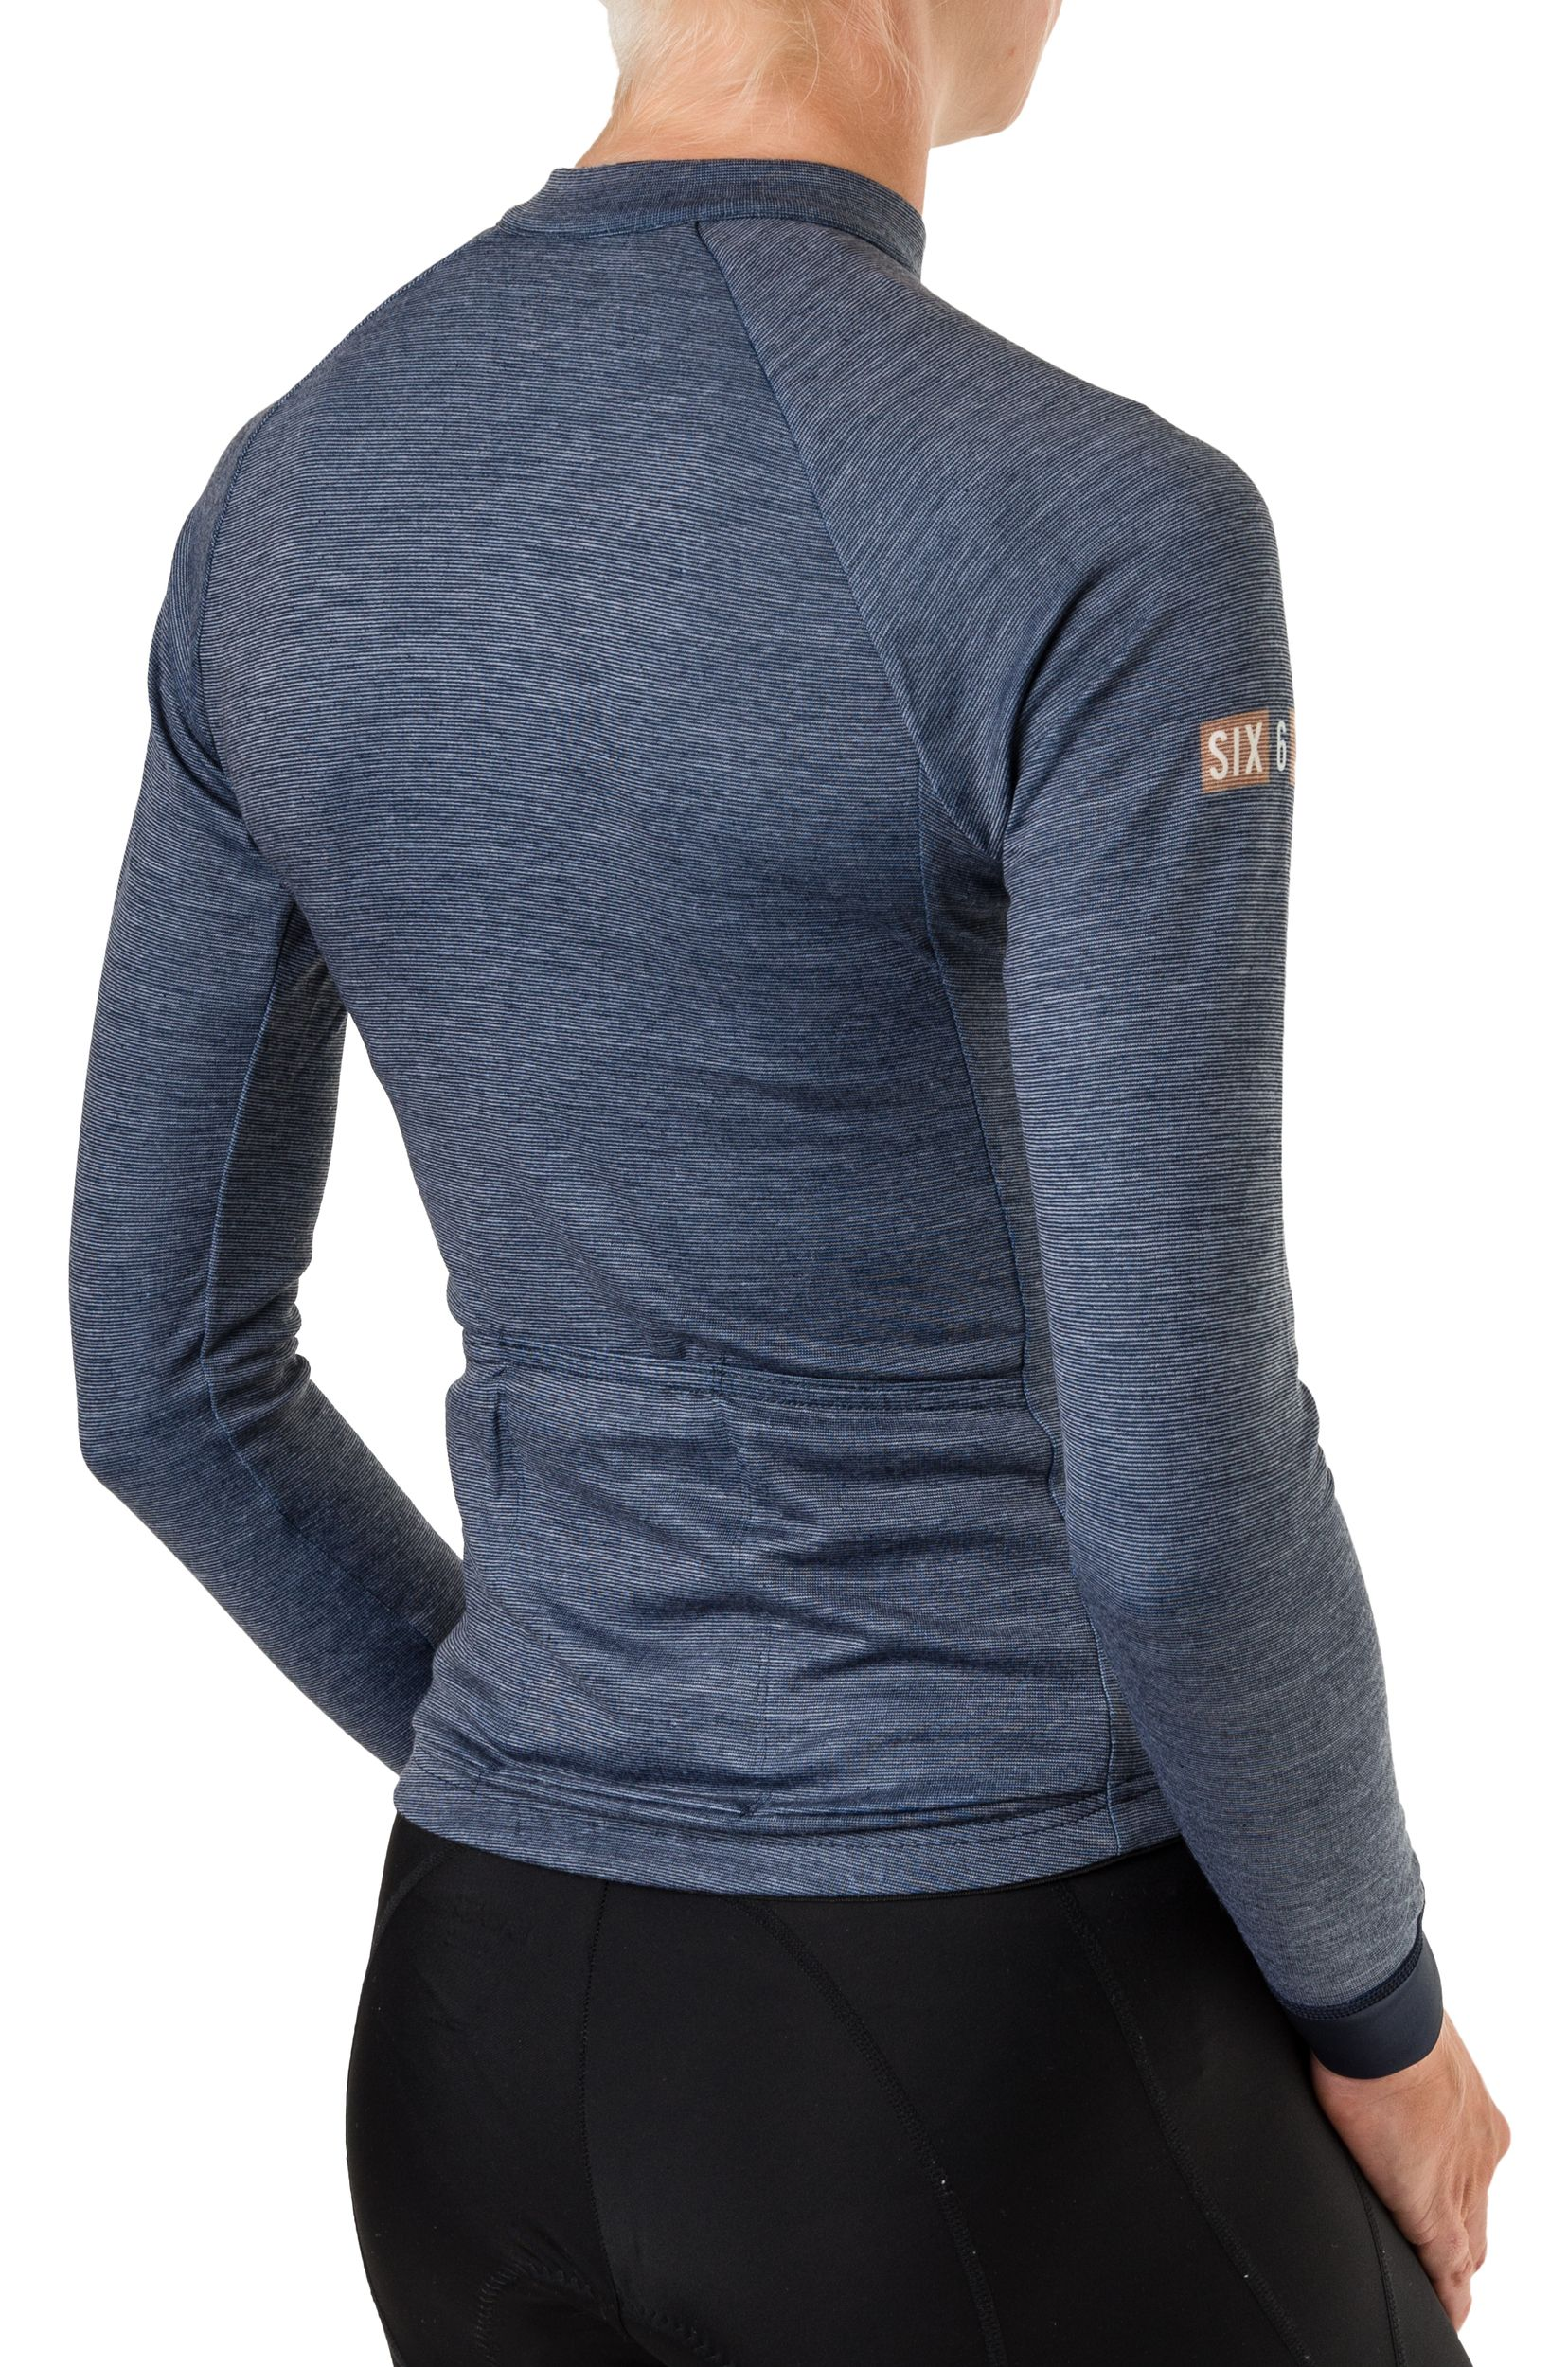 Merino Jersey LS Six6 Women fit example